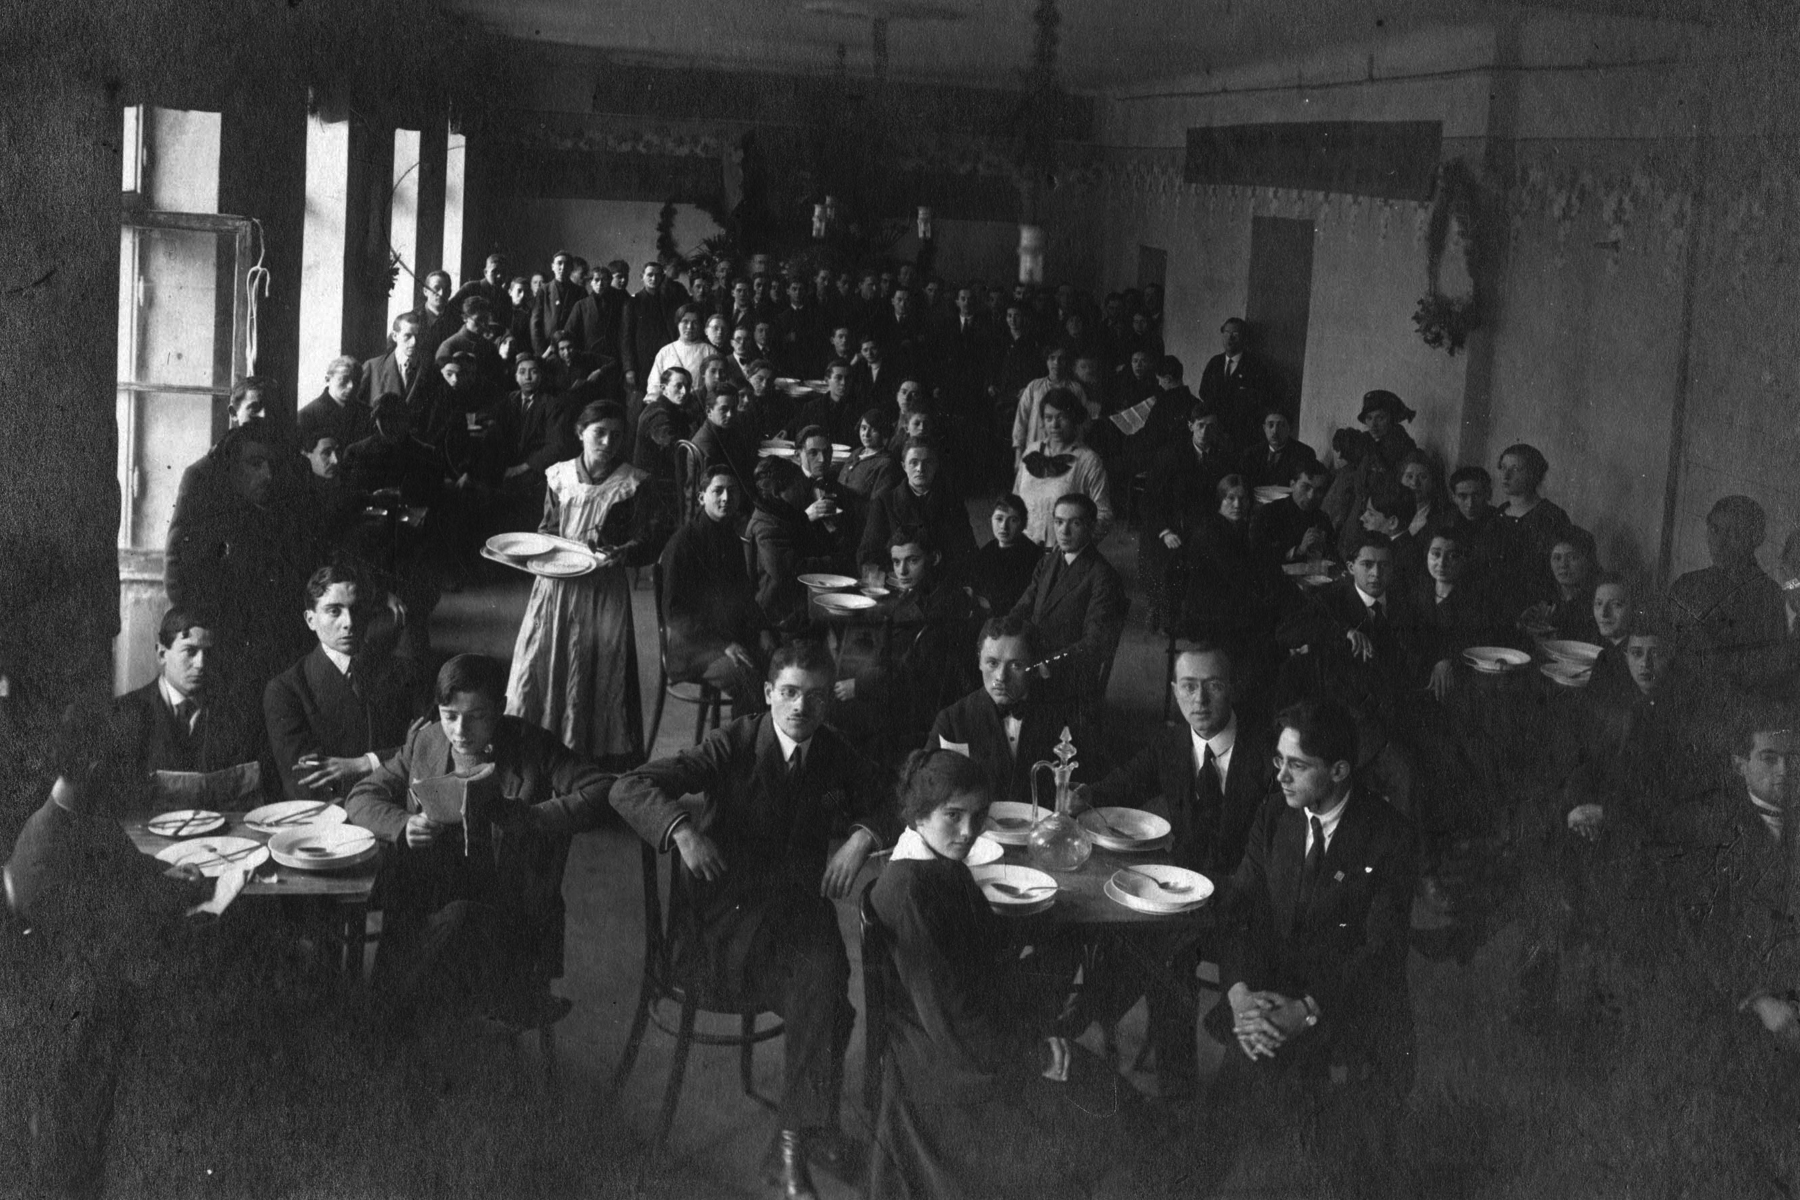 Meeting of Labour Zionist party in Warsaw, 1919 Loaned by Frances Nemetz Lew.